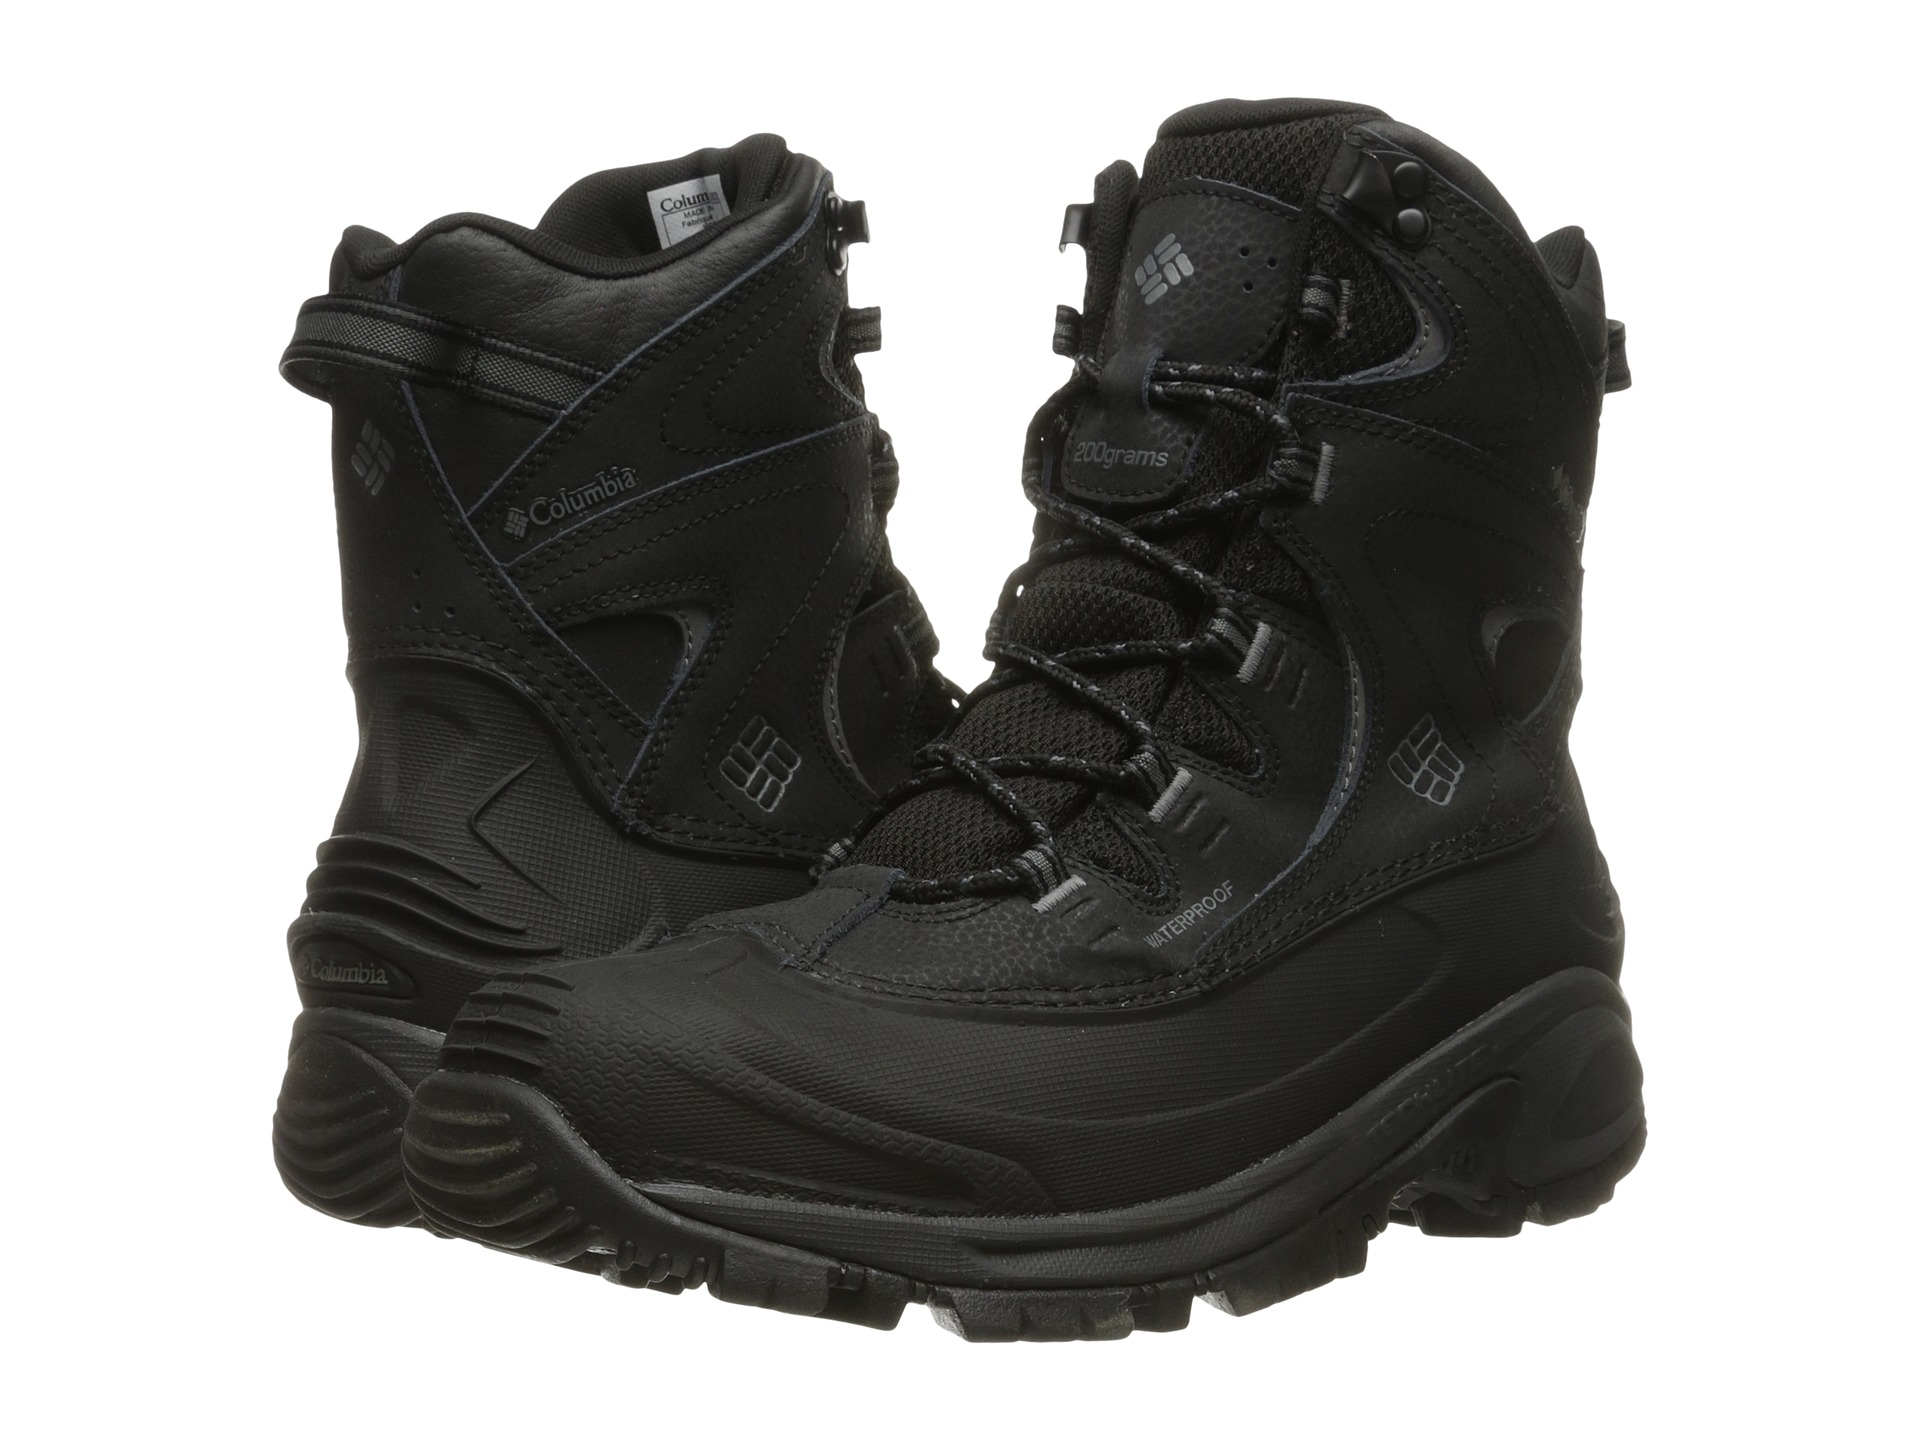 Boots, Snow Boots, Men | Shipped Free at Zappos